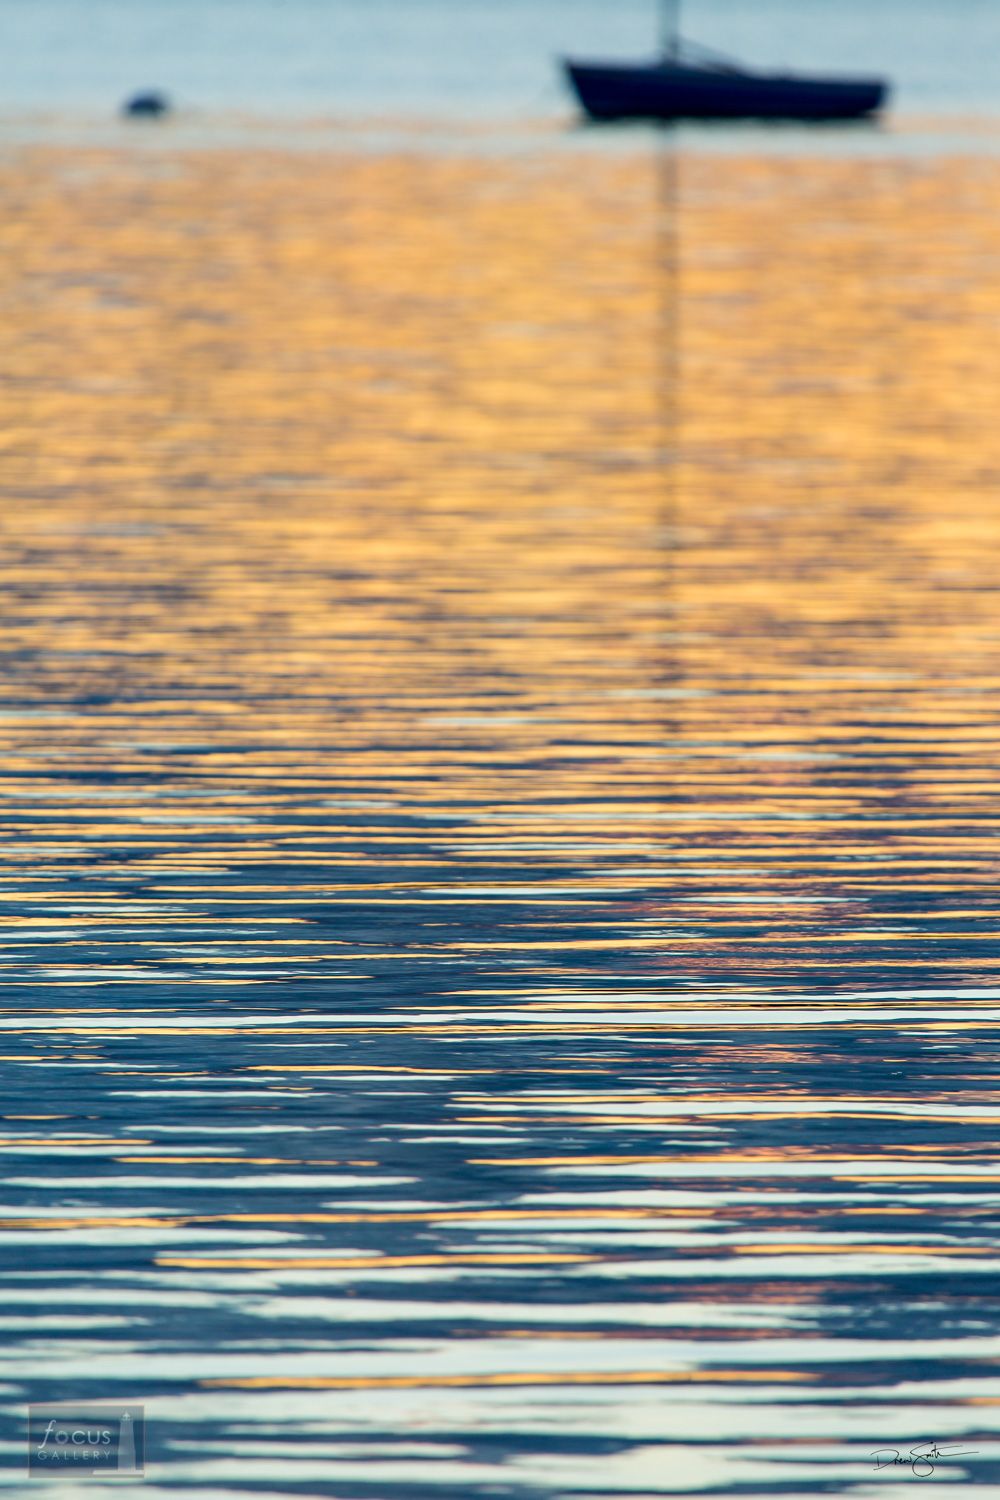 Sailboat silhouette and sunrise colors on the surface of Lake Michigan.